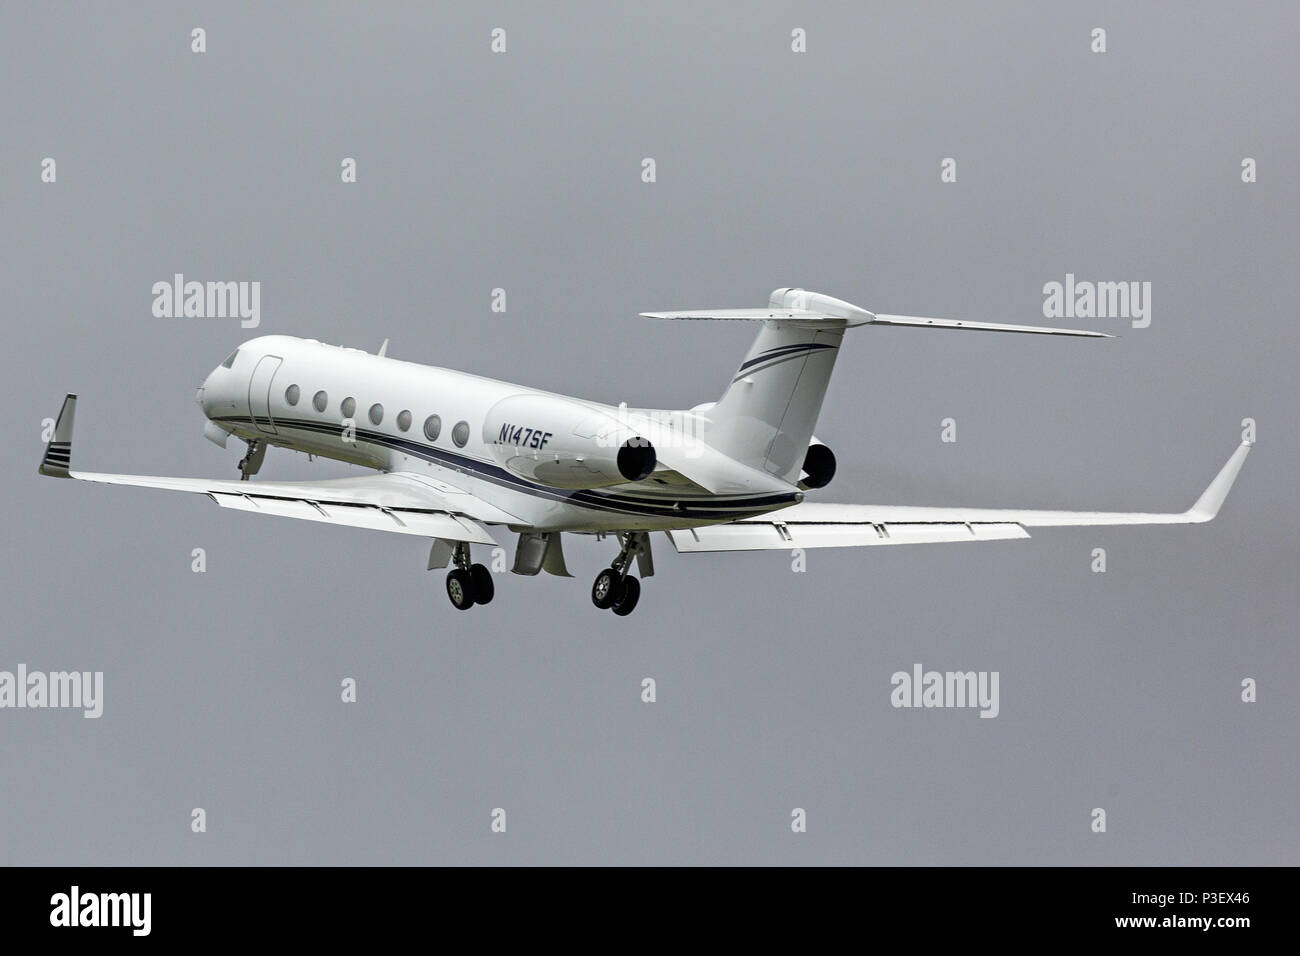 A Gulfstream Aerospace GV-SP G550 business Corporate Jet Aircraft, registered as N147SF, taking off from London Luton Airport in England. - Stock Image